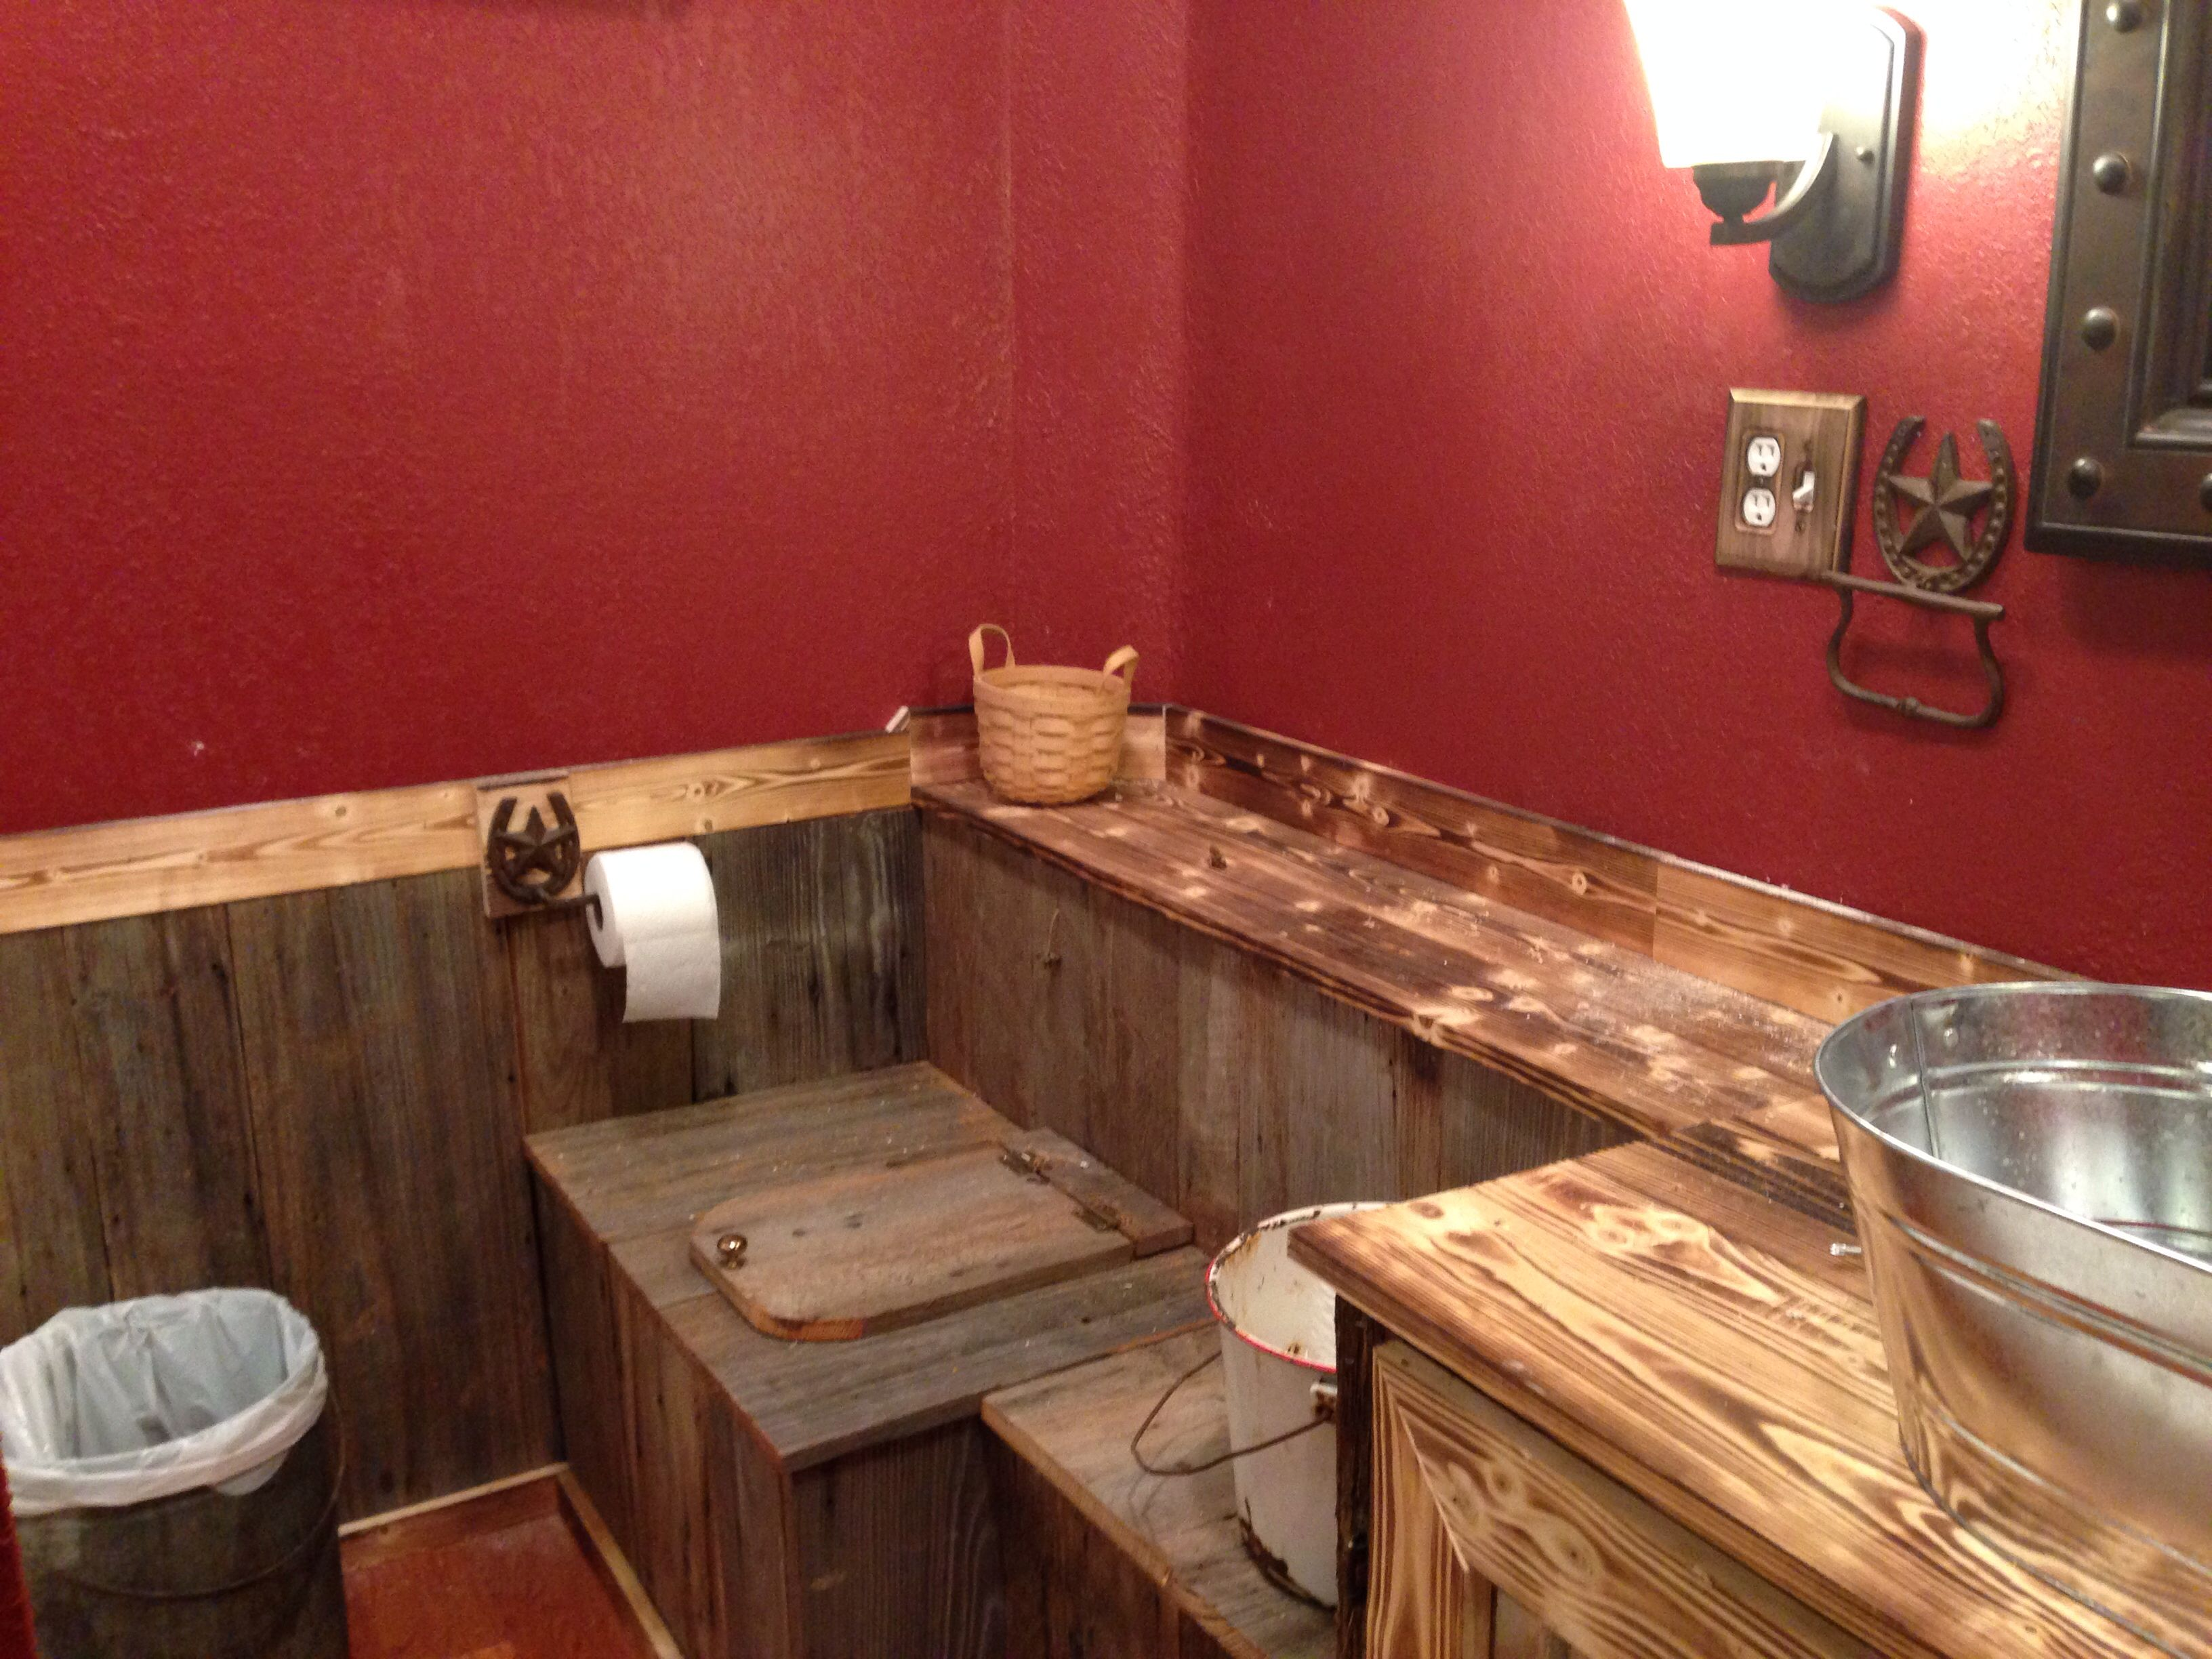 Our Rustic Bathroom. The Paint Is Cabin Red Valspar From Lowes. We Put In